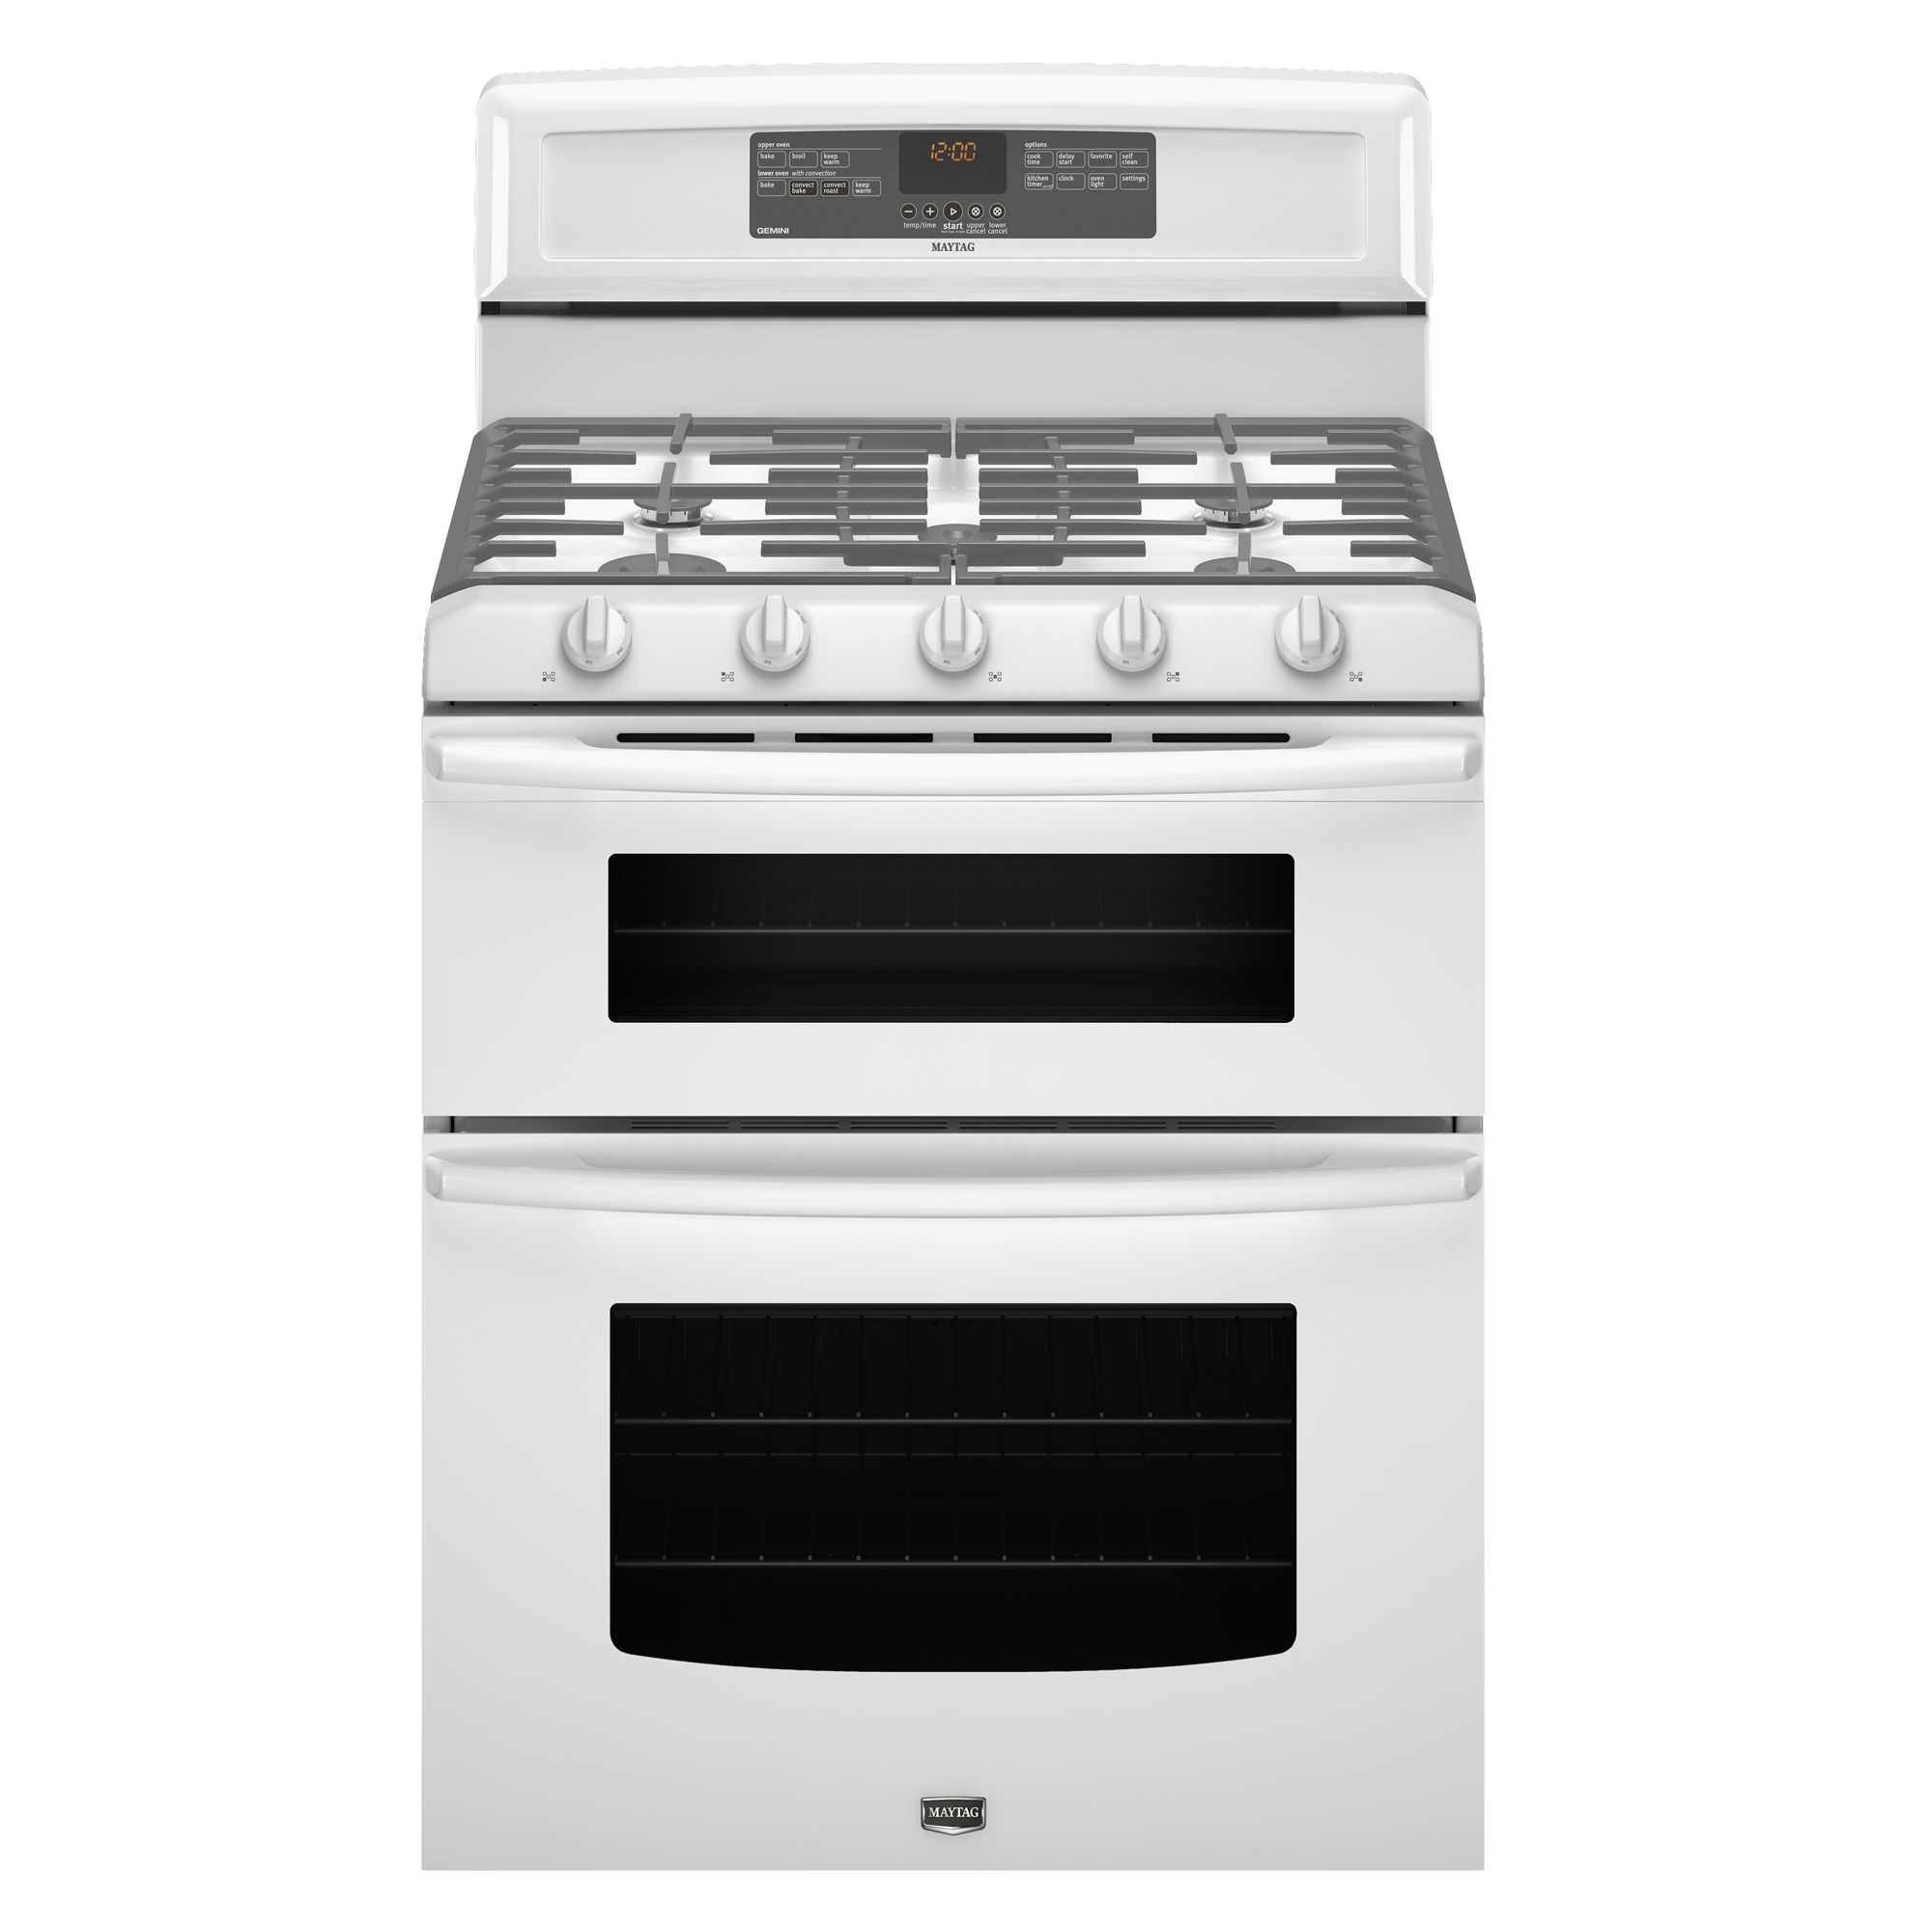 Maytag Mgt8775xw 6 Cu  Ft  Double Oven Gas Range W